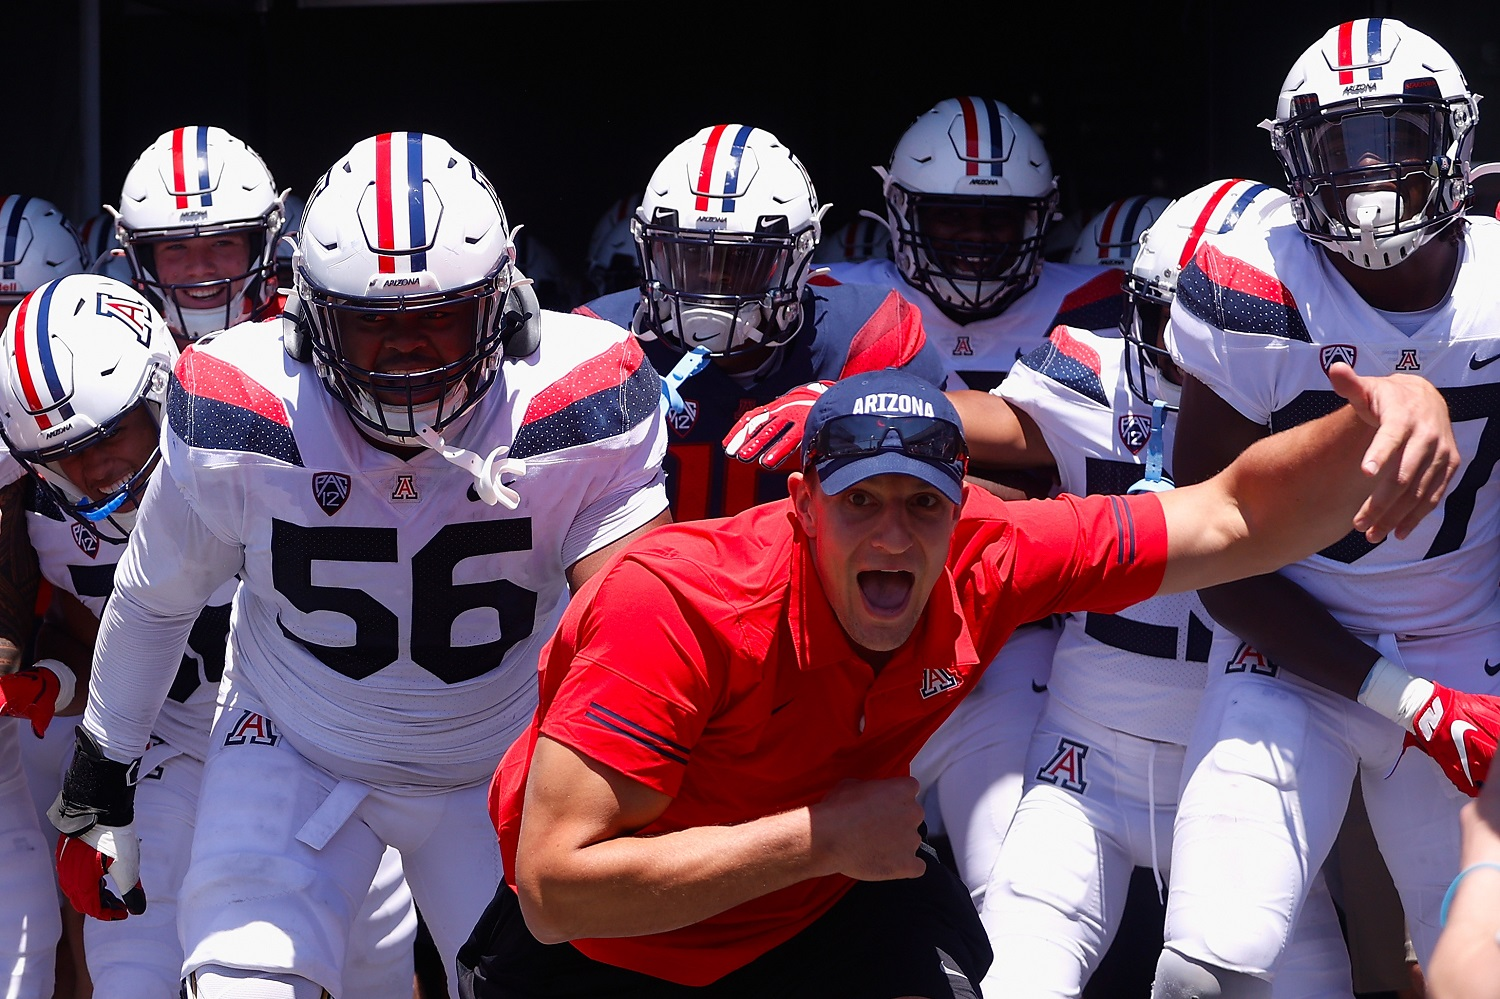 Former University of Arizona tight end Rob Gronkowski leads players onto the field before the Wildcats' annual spring game on April 24, 2021. | Christian Petersen/Getty Images